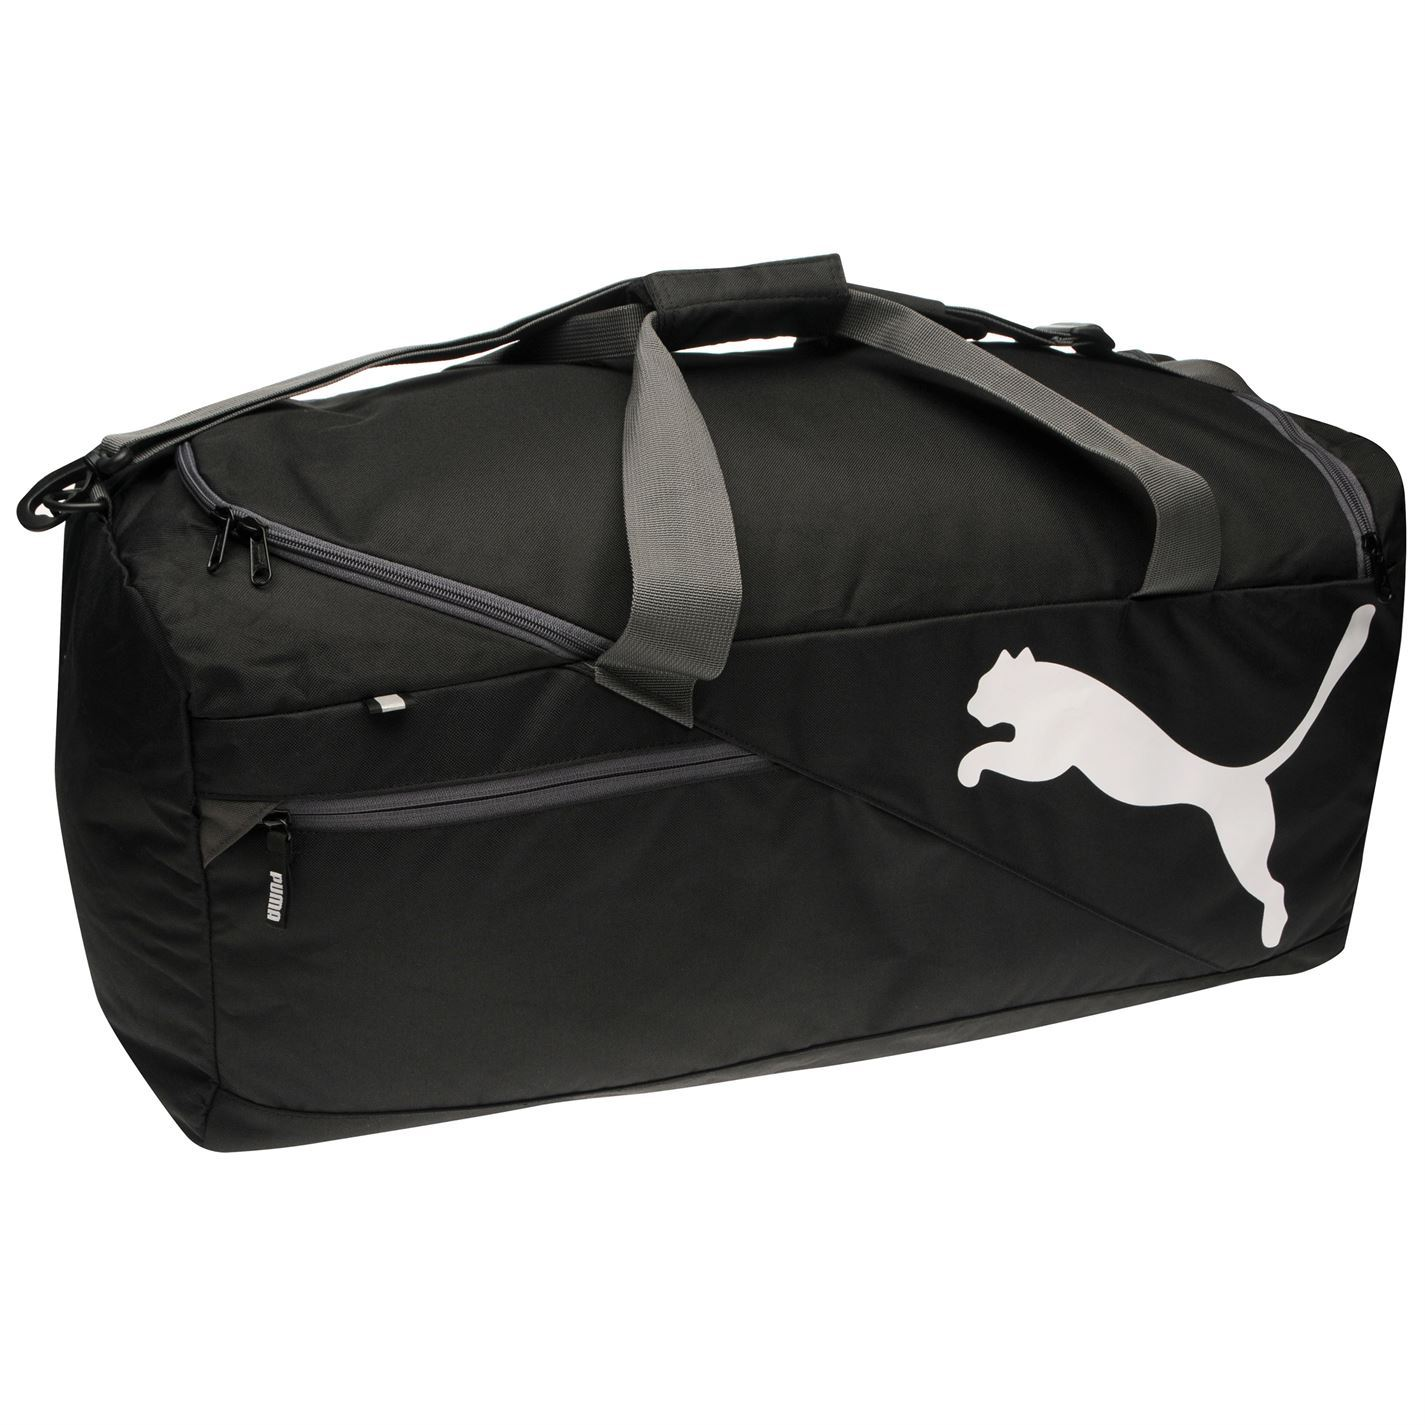 Details about Puma Fund Large Bag Holdall Travel Storage Luggage Accessories 90d96f6ed2